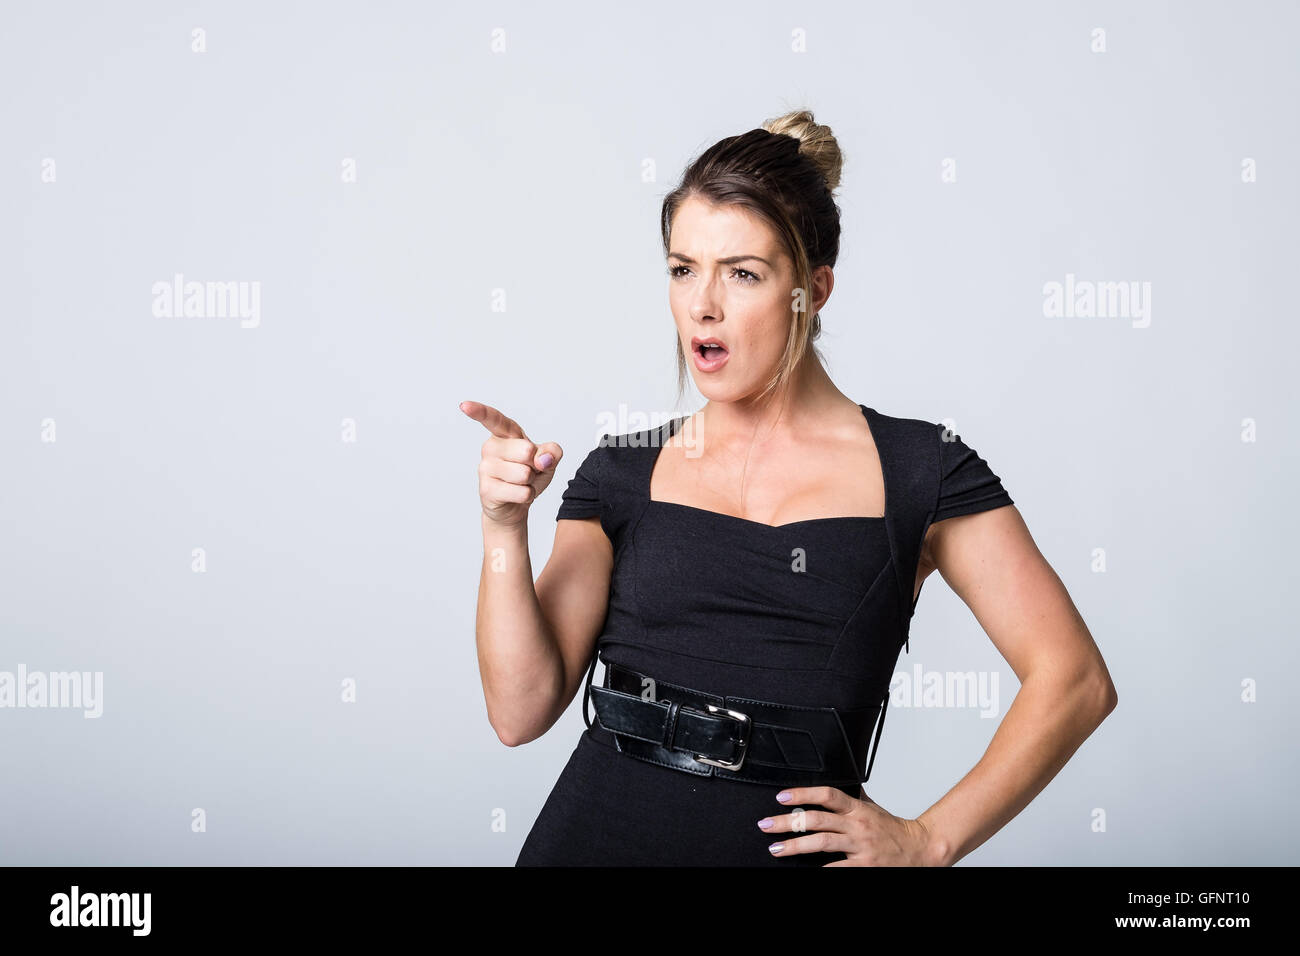 Angry woman in black dress pointing finger - Stock Image